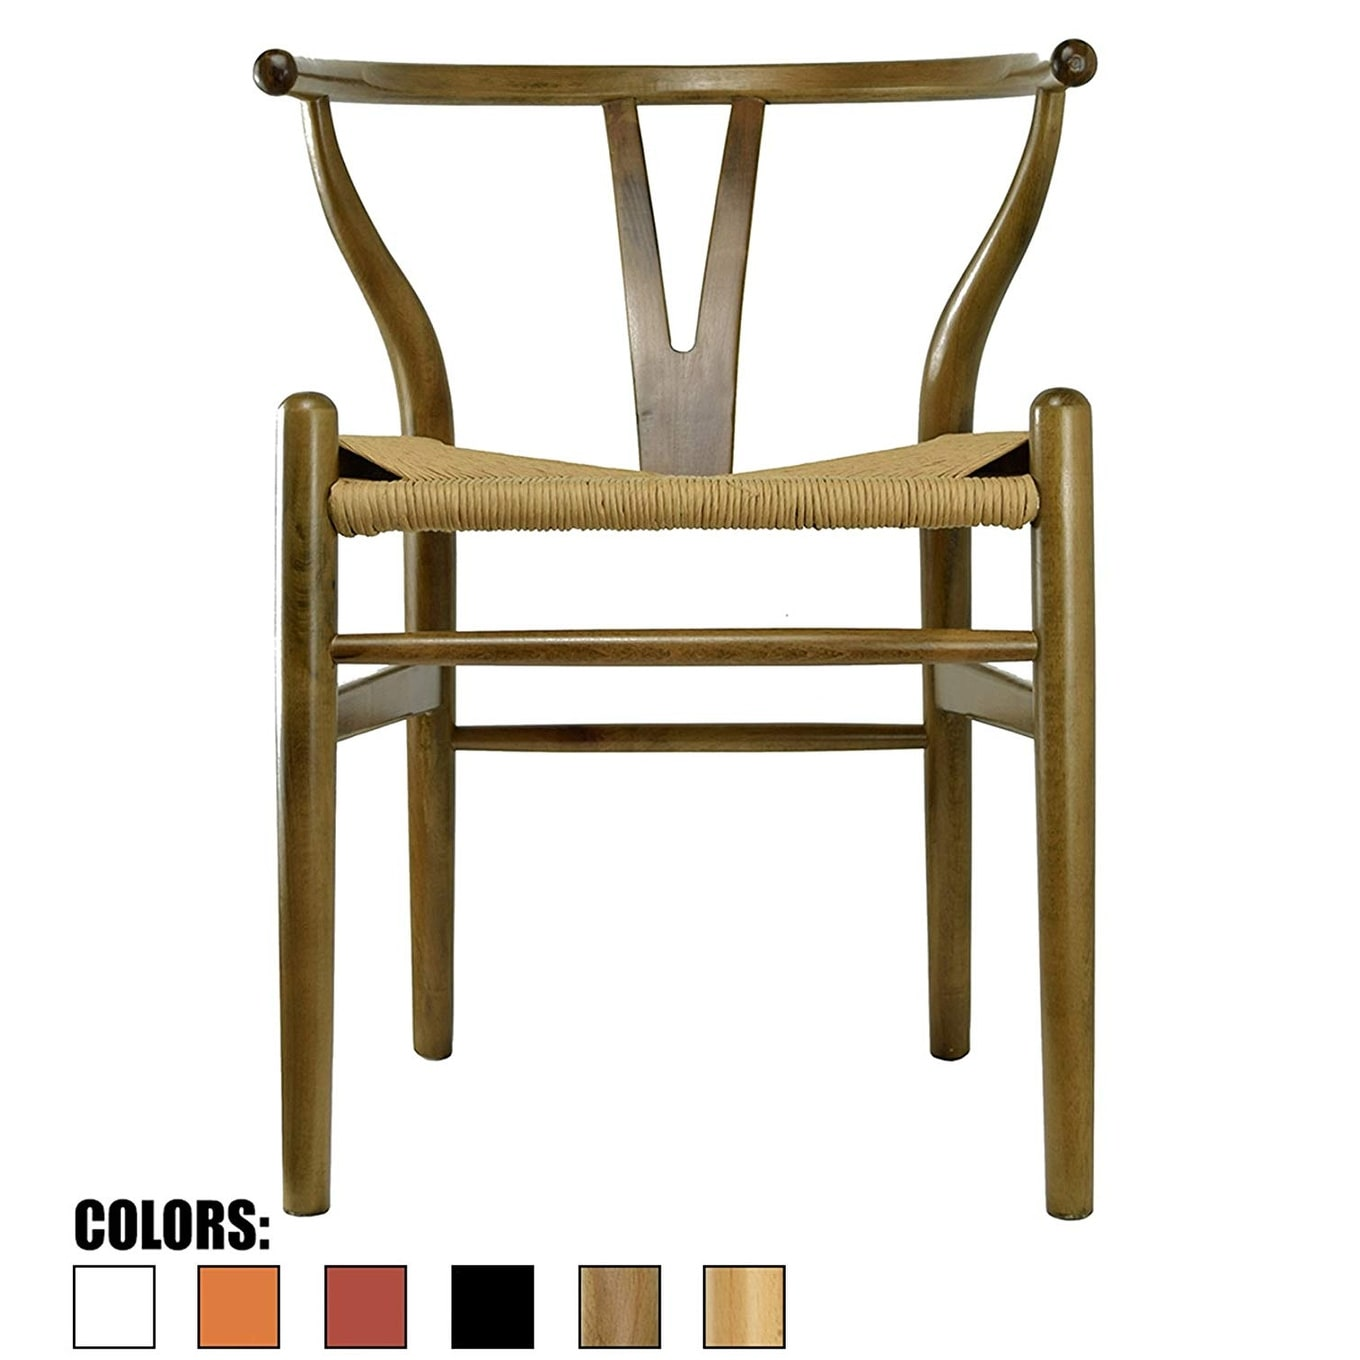 2xhome   Walnut Modern Wood Dining Chair With Back Arm Armchair Hemp Seat  For Home Restaurant Office